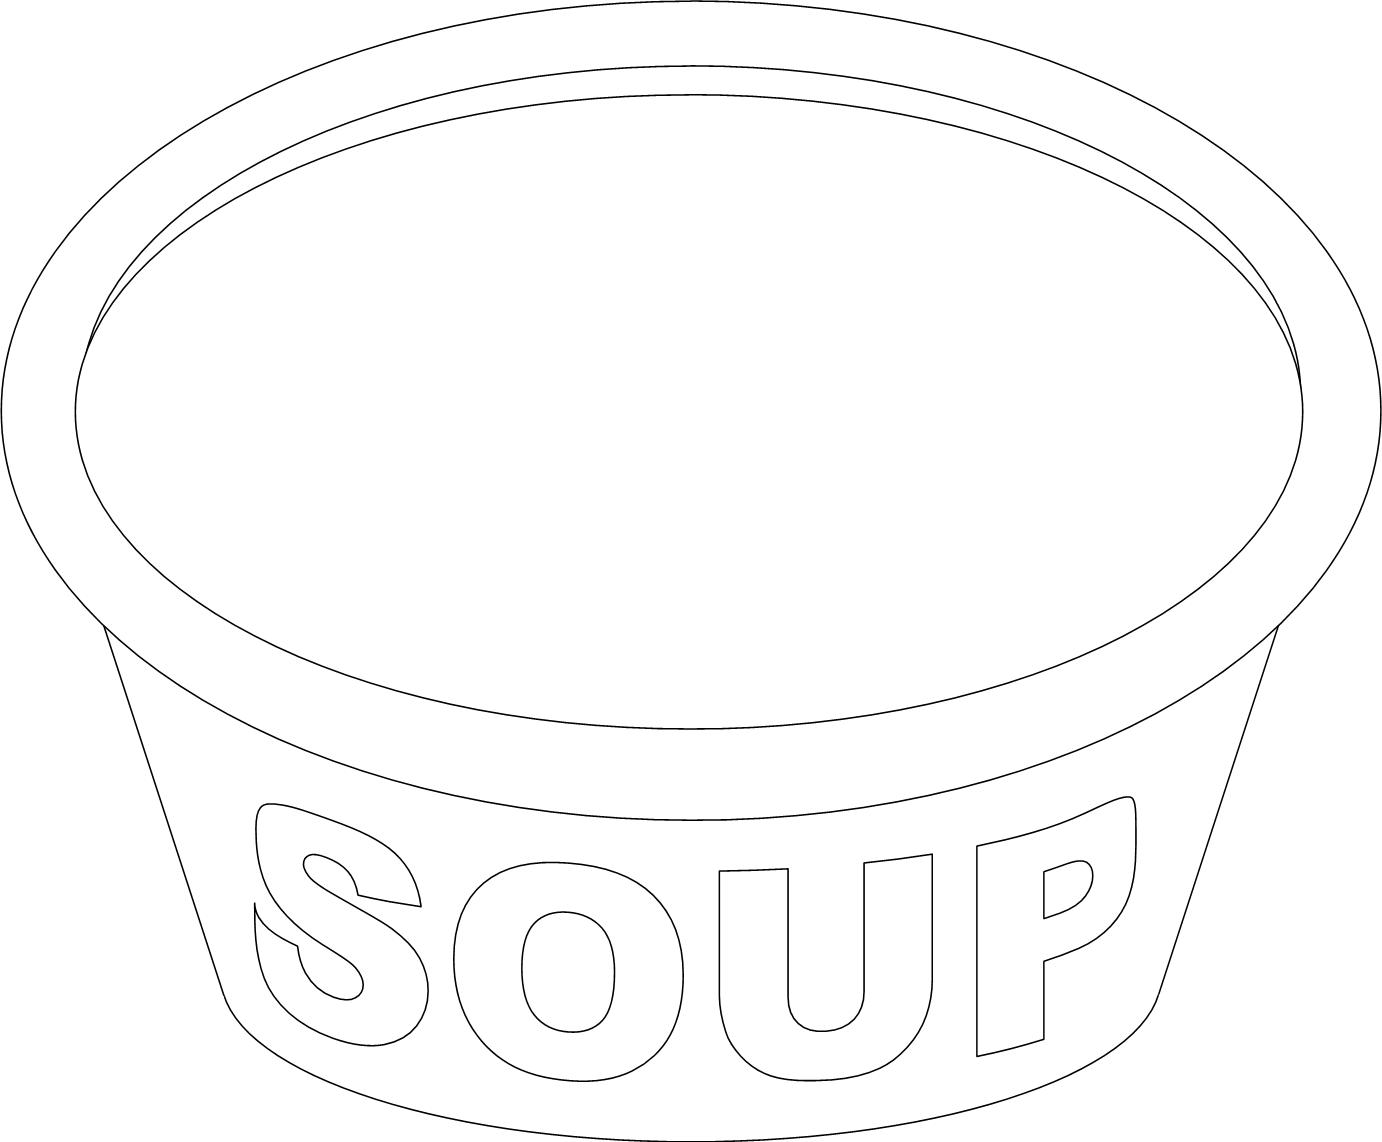 Soup Coloring Pages At Getcolorings